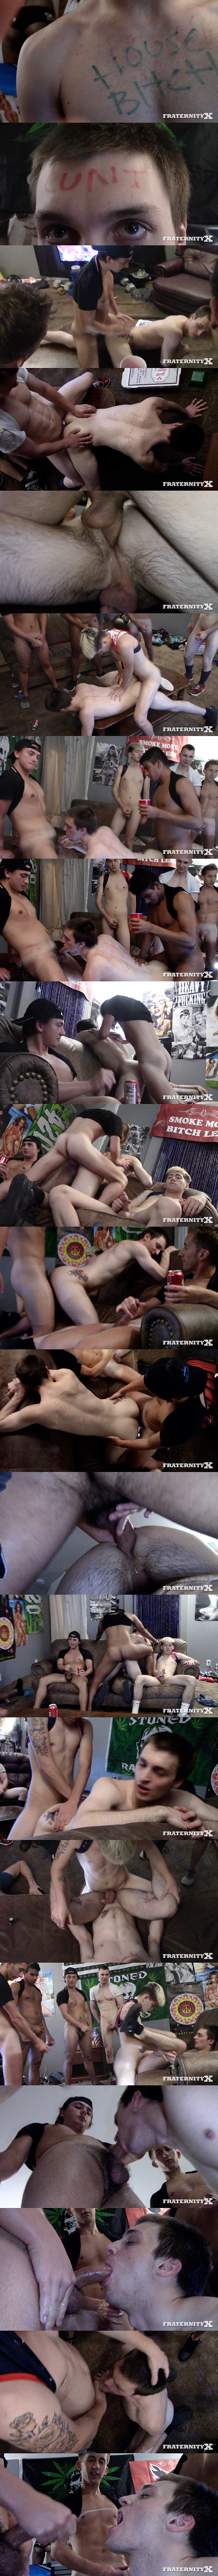 Chase Daniels, Jay Seabrook, Kade Rivers, Levi Whitman and Masyn Thorne gangbang and bareback Quincy Green in Quincy's bottoming debut in House Bitch at Fraternityx 01